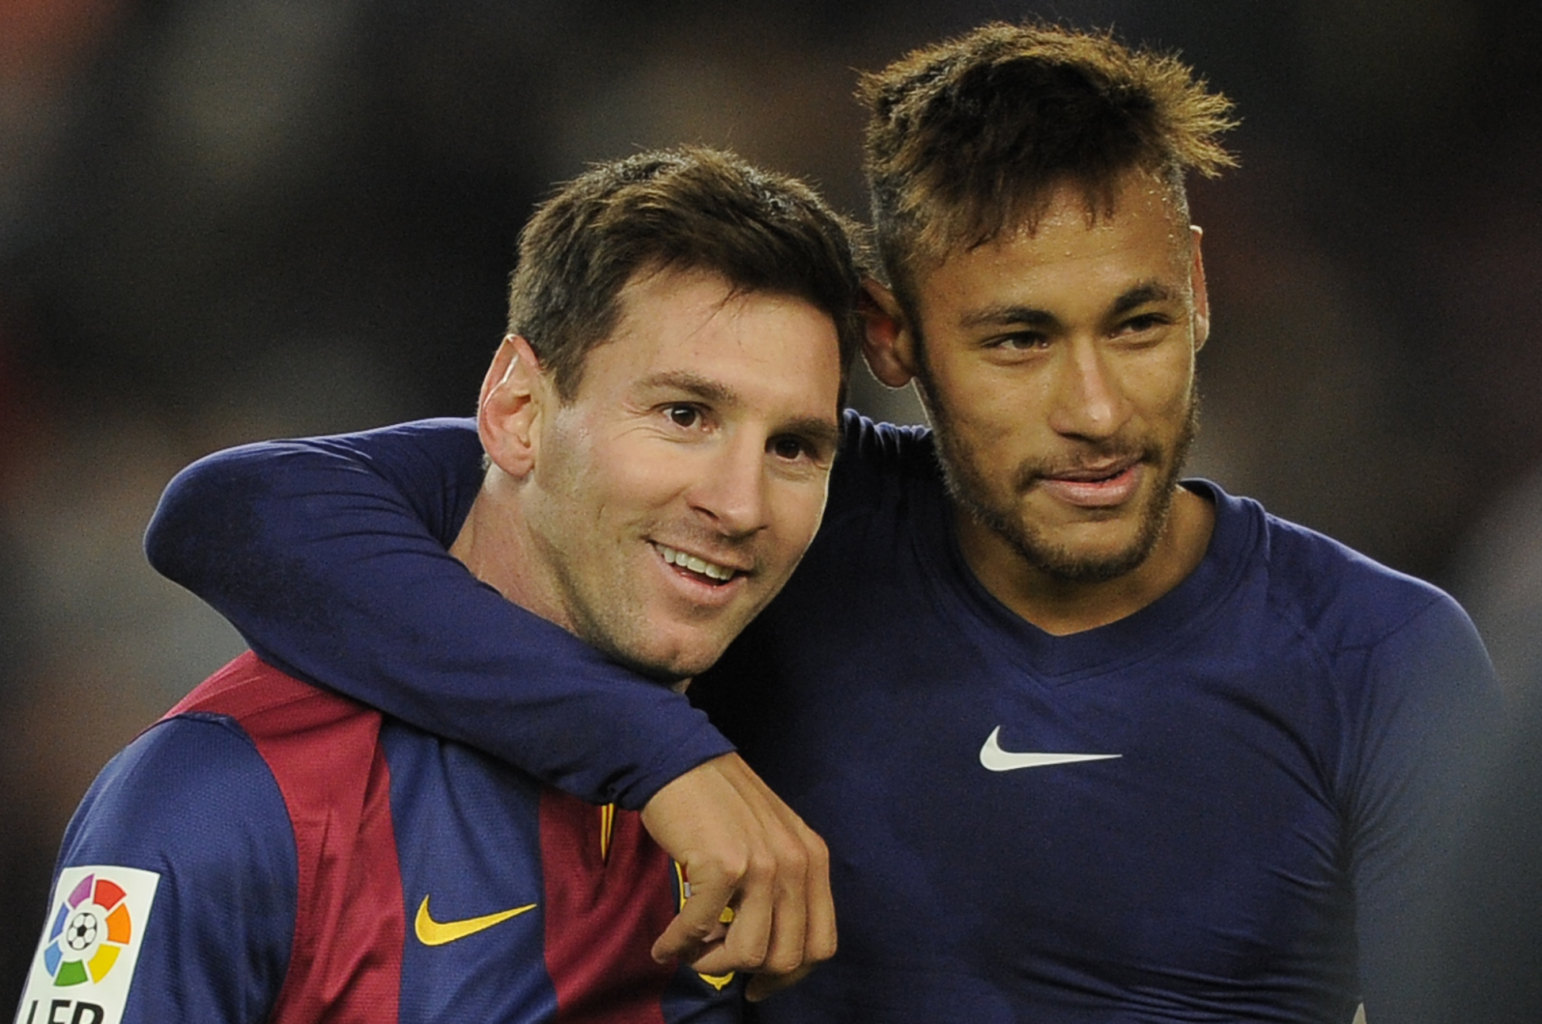 Messi and Neymar friends